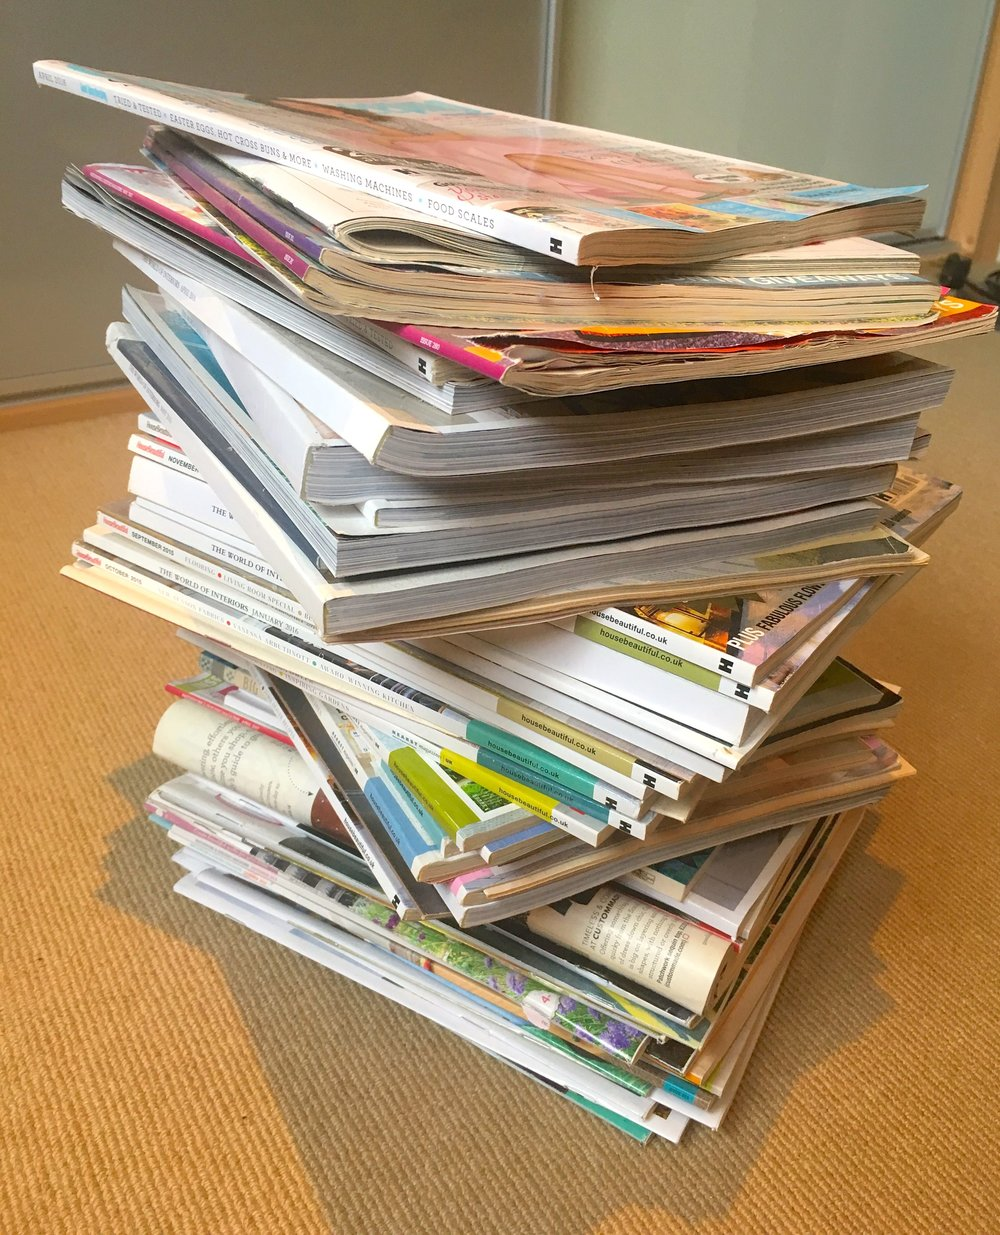 A BIGGER PILE OF MAGAZINES